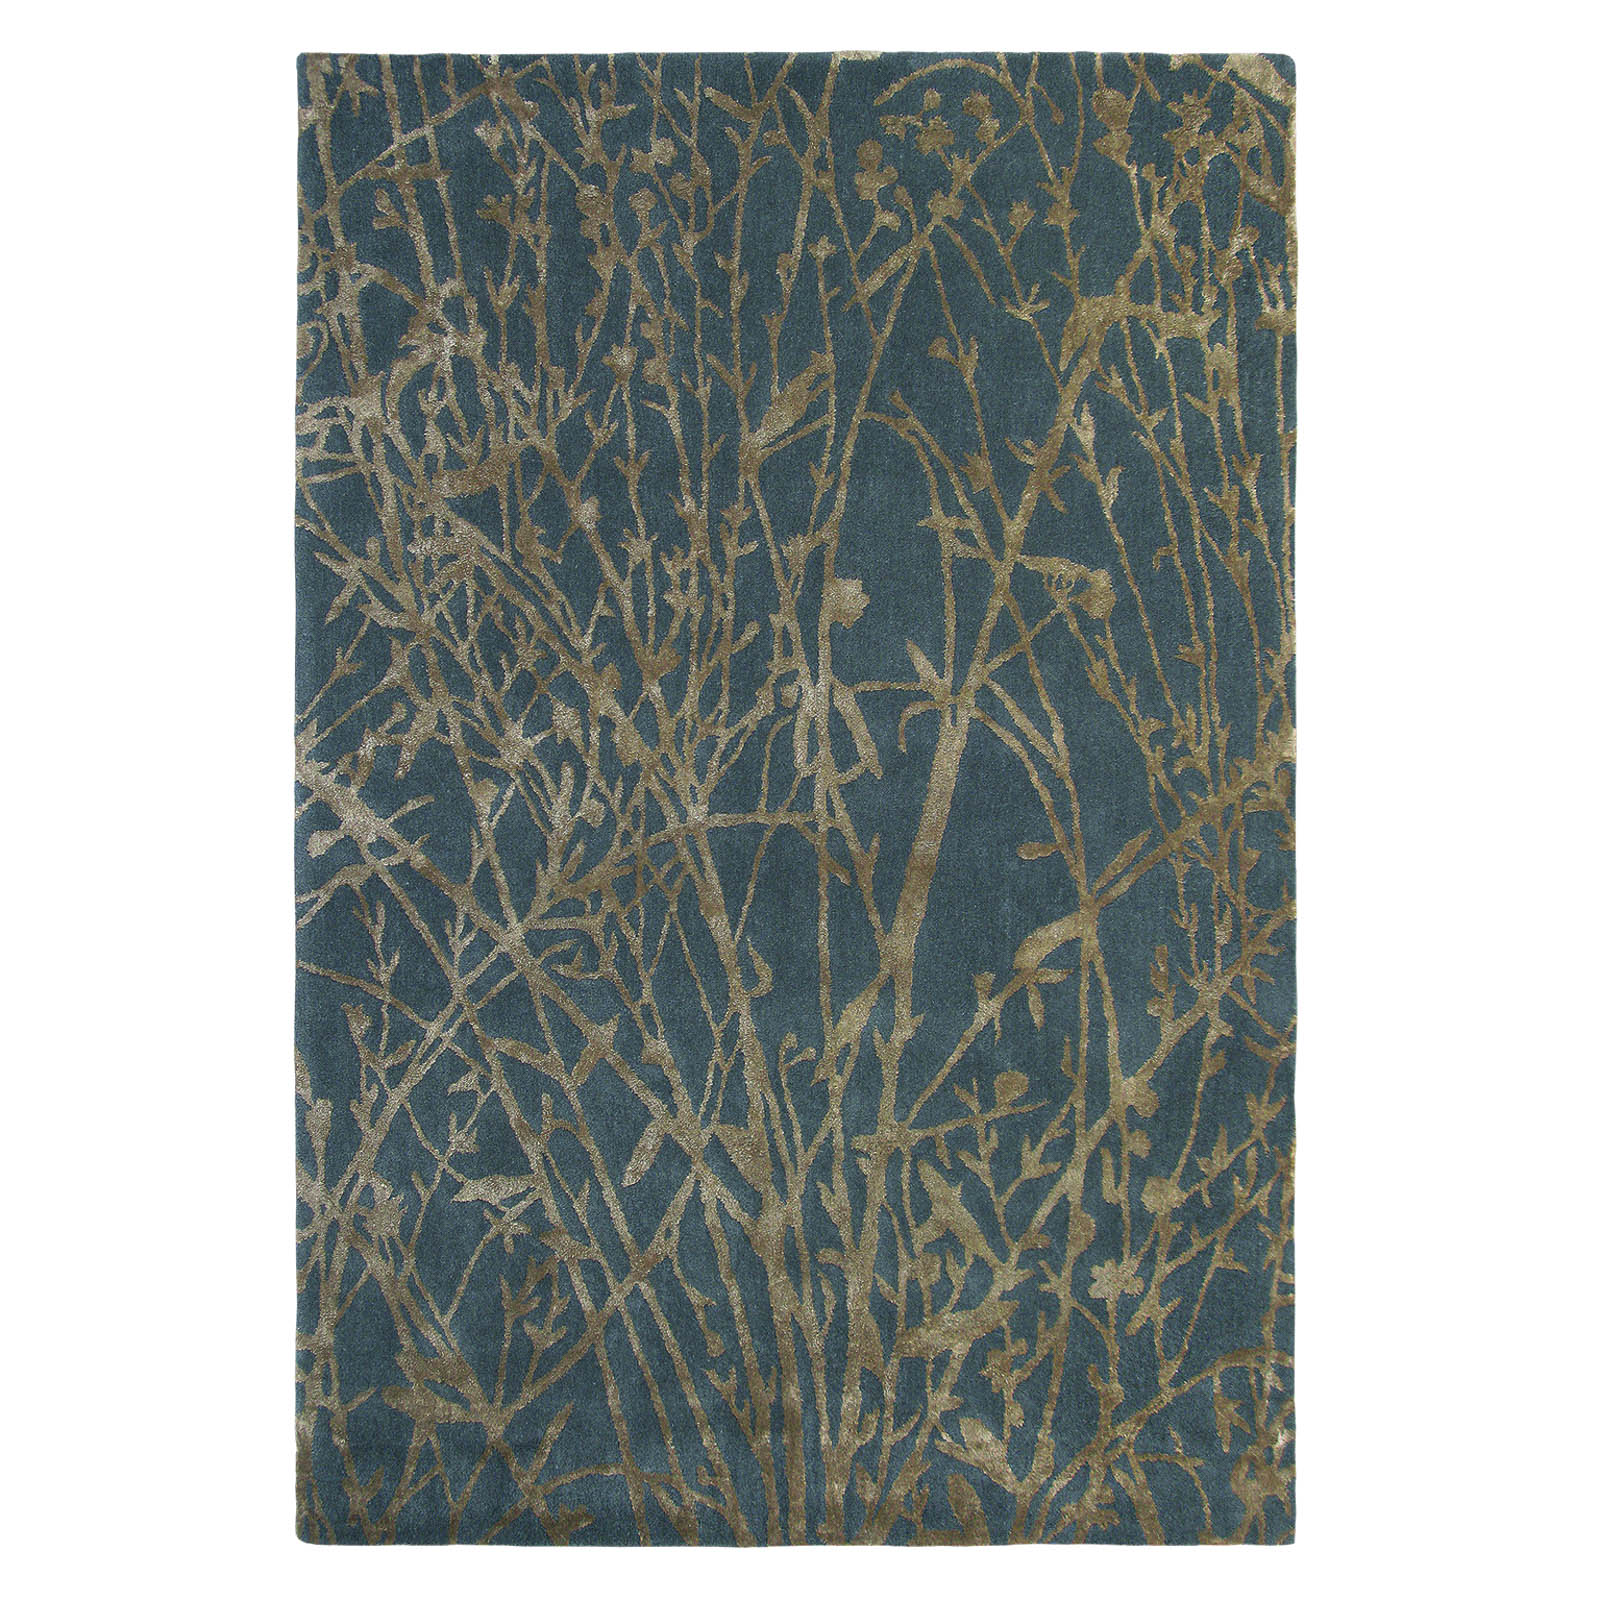 Meadow Burnish Rugs 46805 by Sanderson